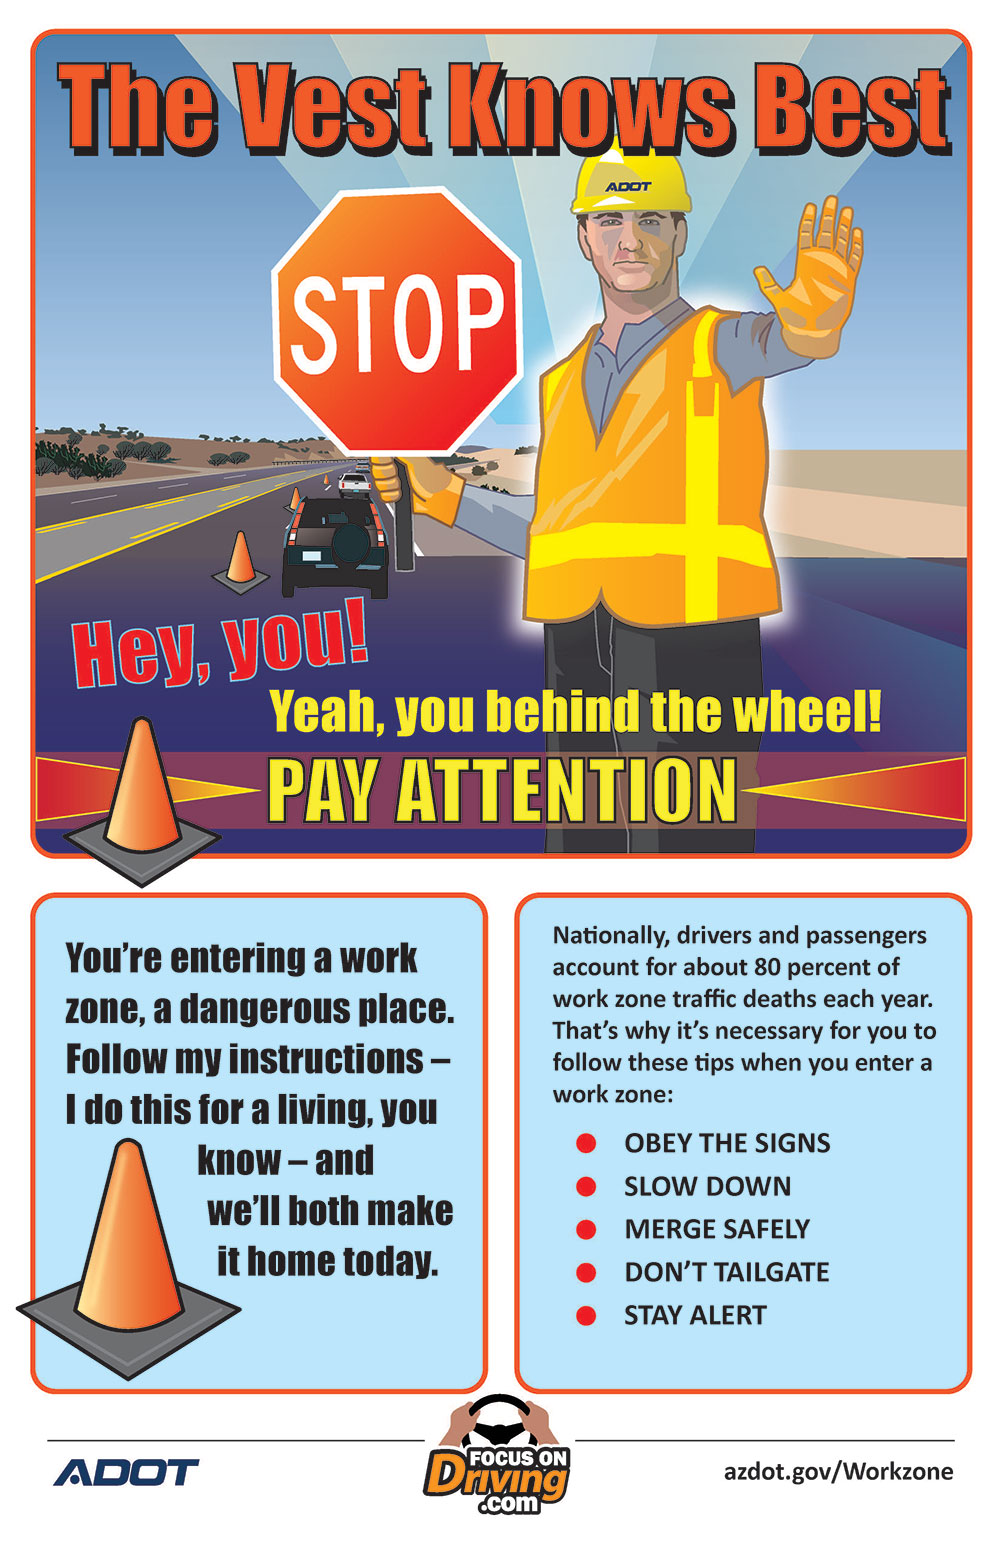 Work Zone Safety - The Vest Knows Best